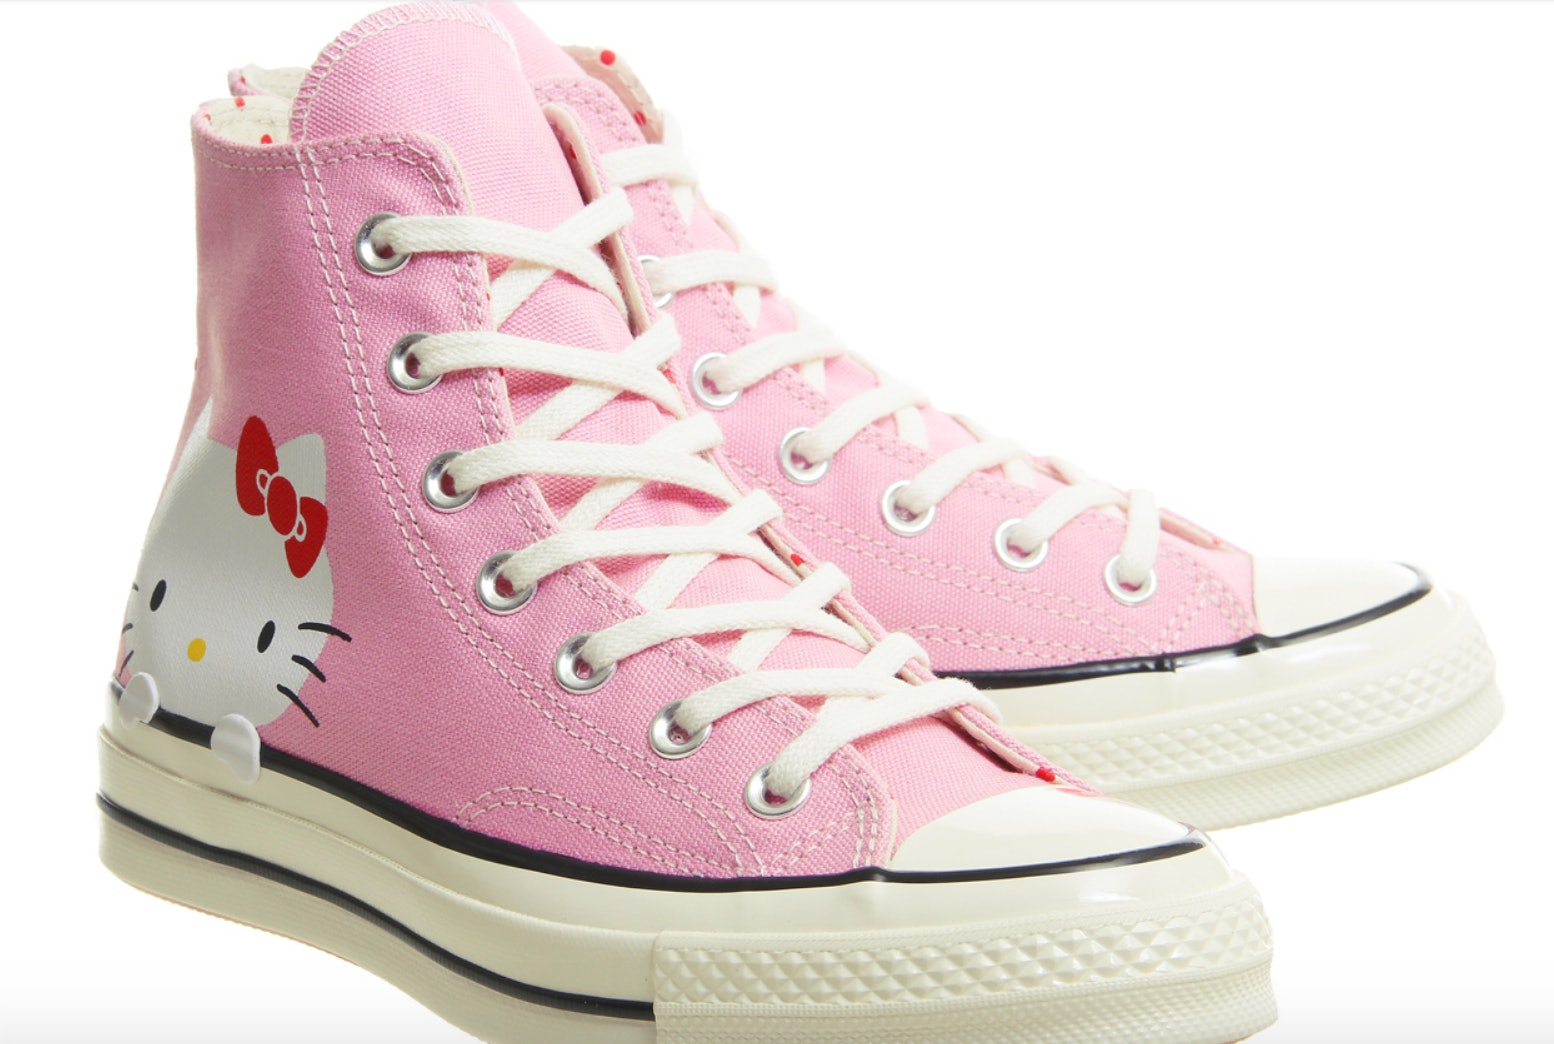 Buy Hello Kitty x Converse Shoes